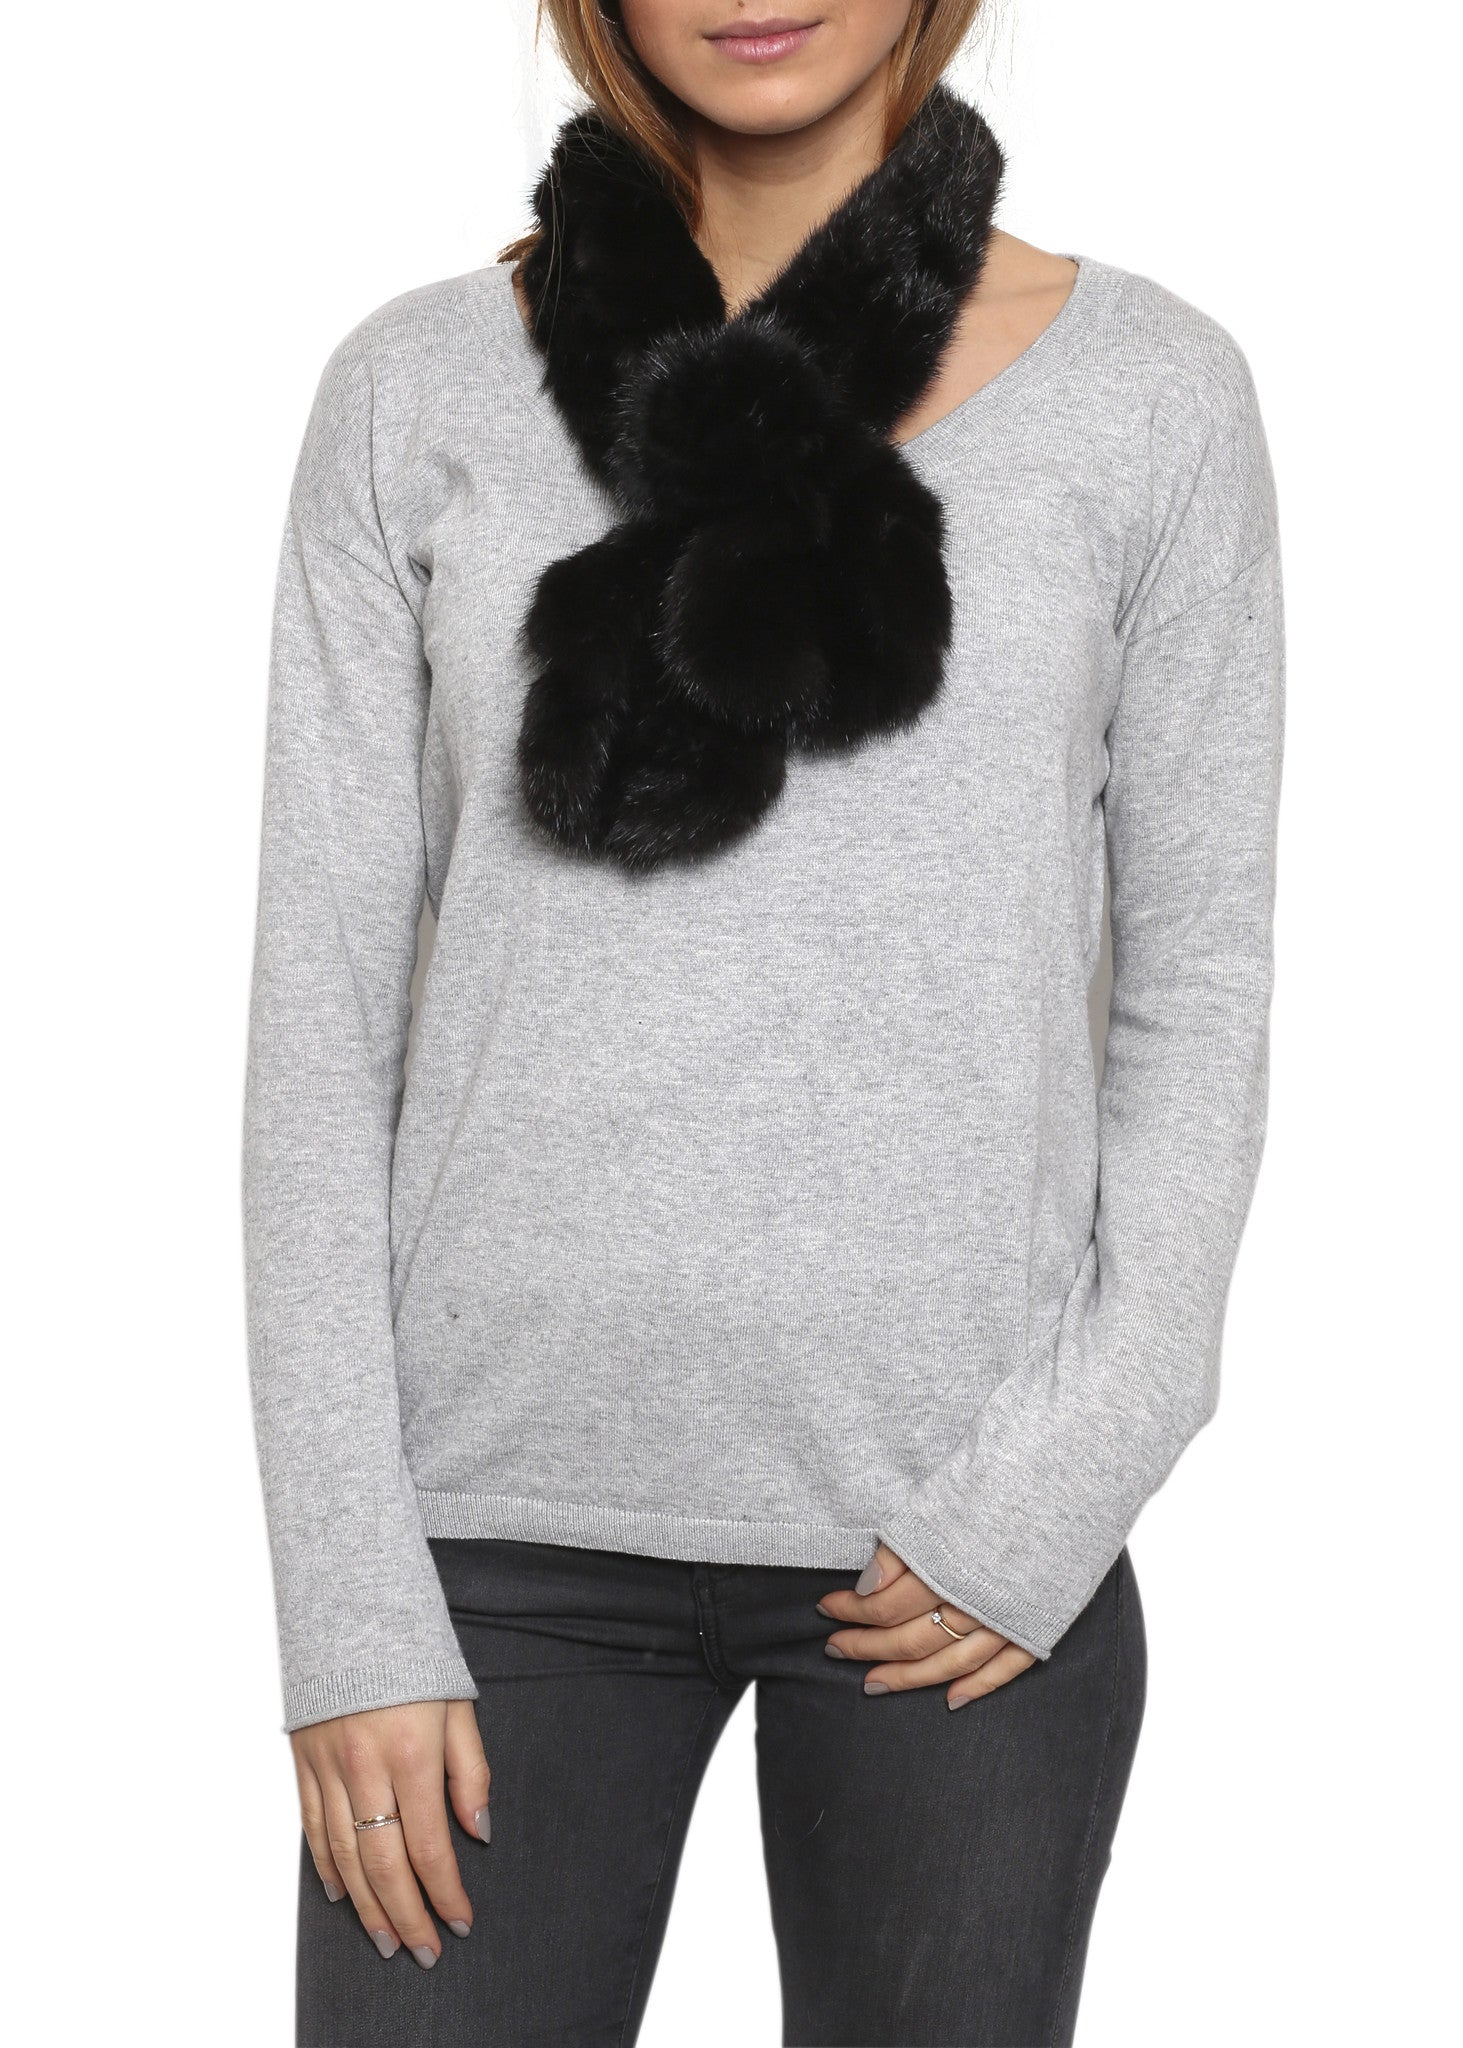 Jessimara Black Knitted Mink Rose Scarf